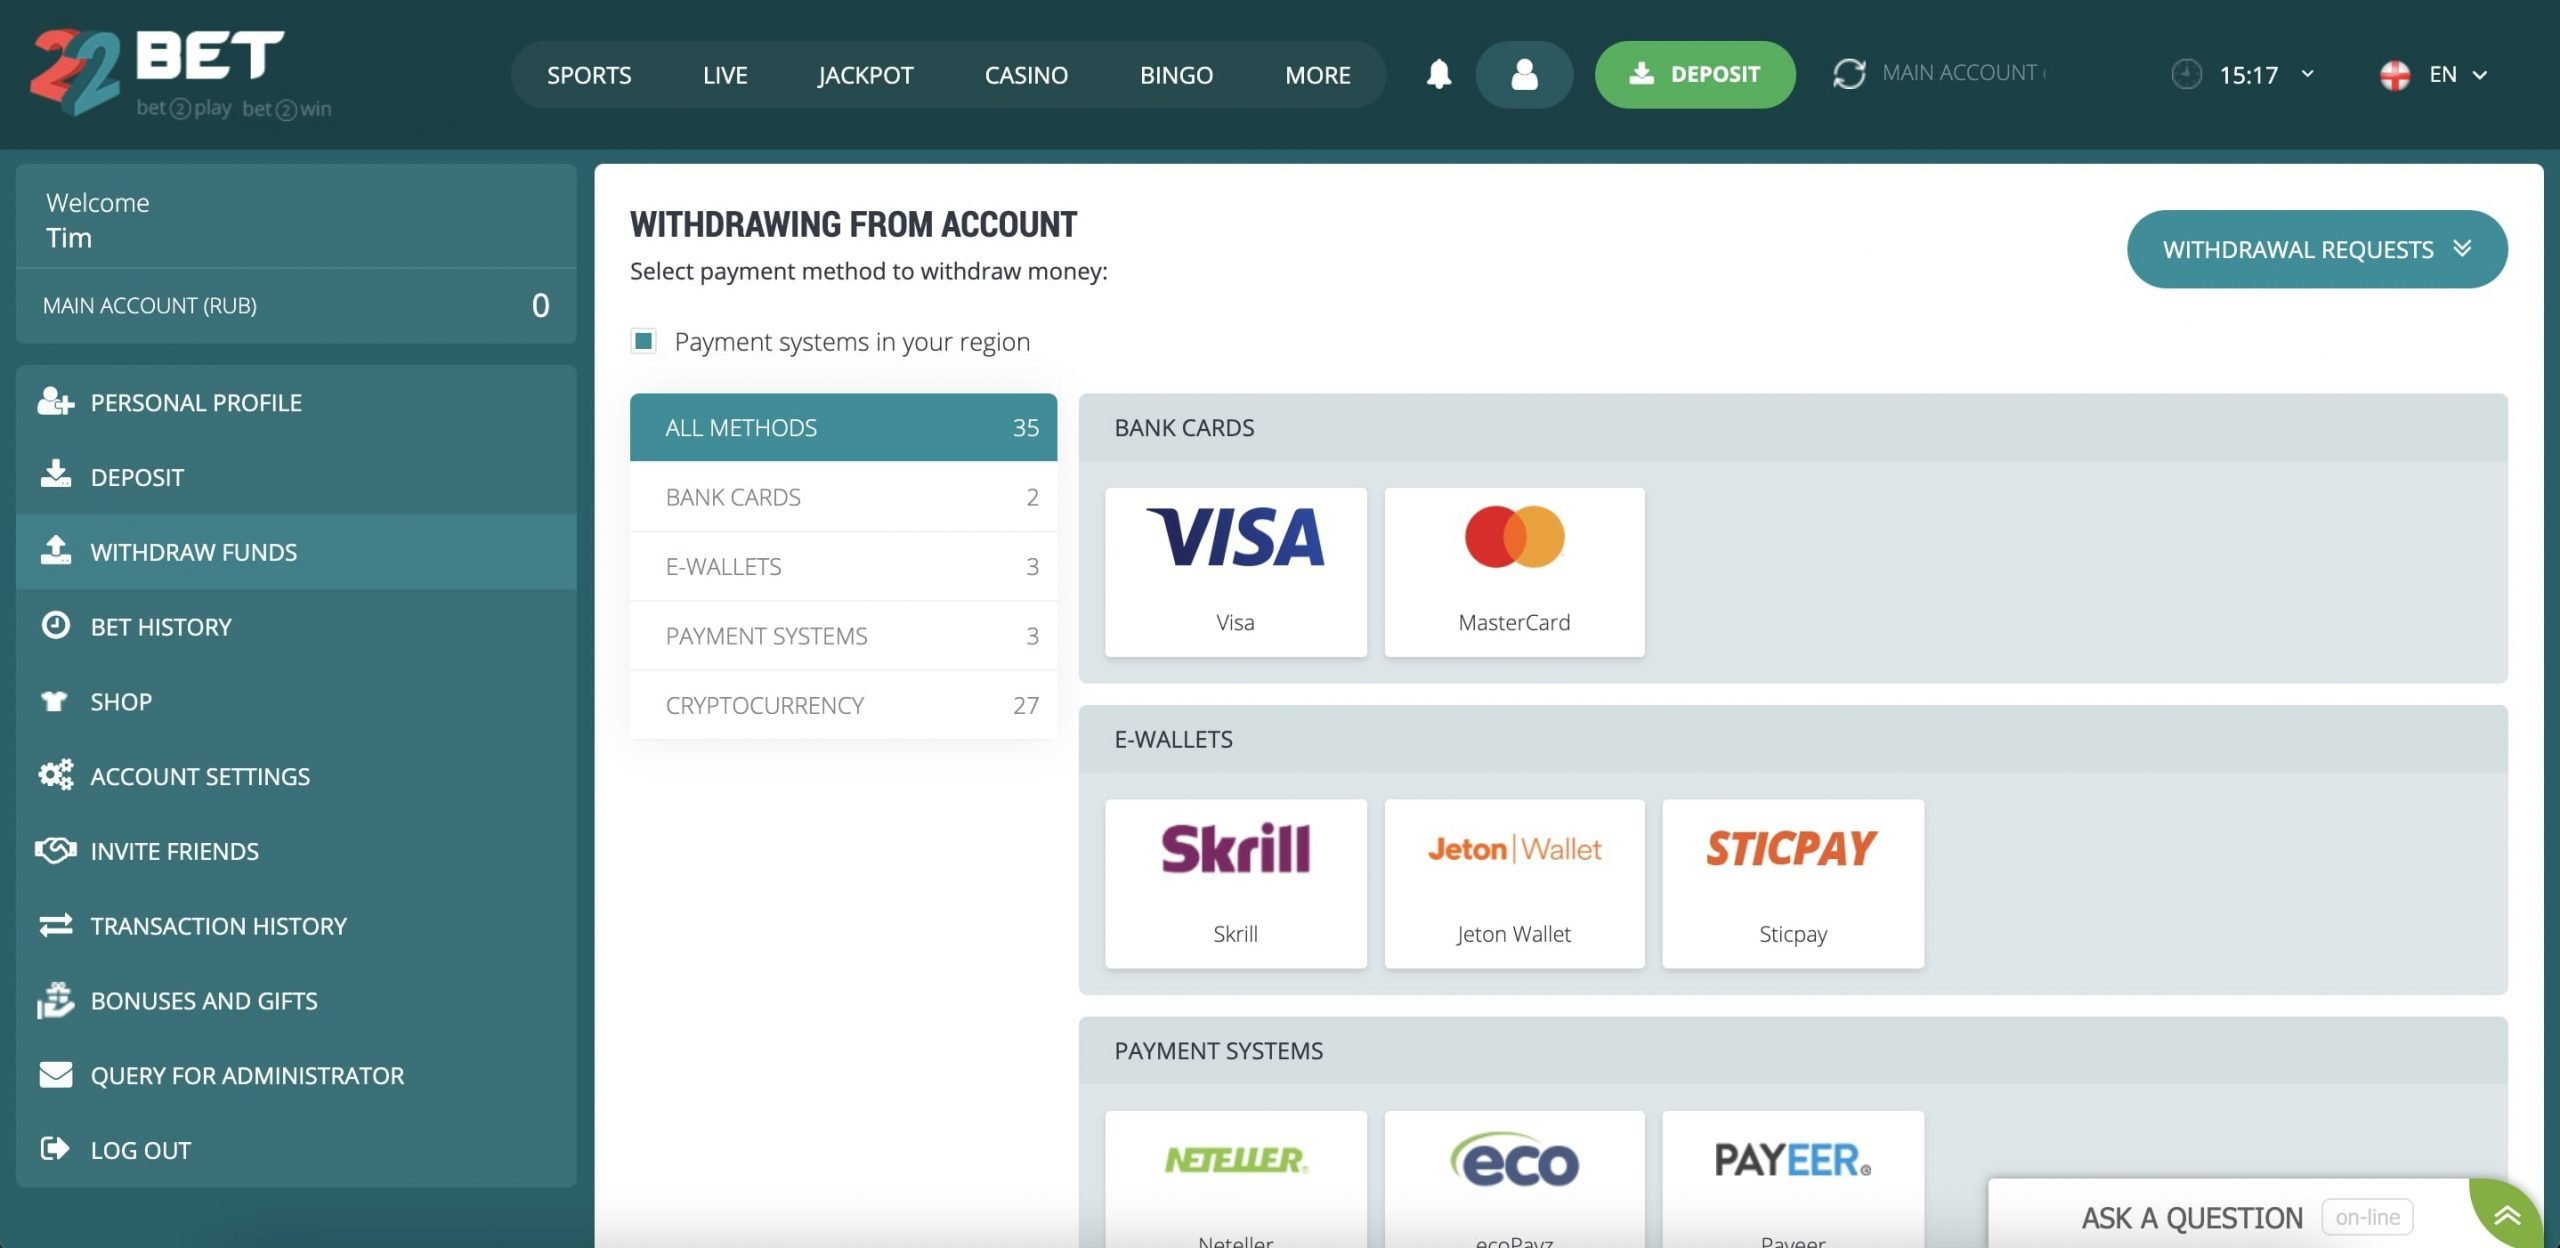 22bet account withdrawal page.